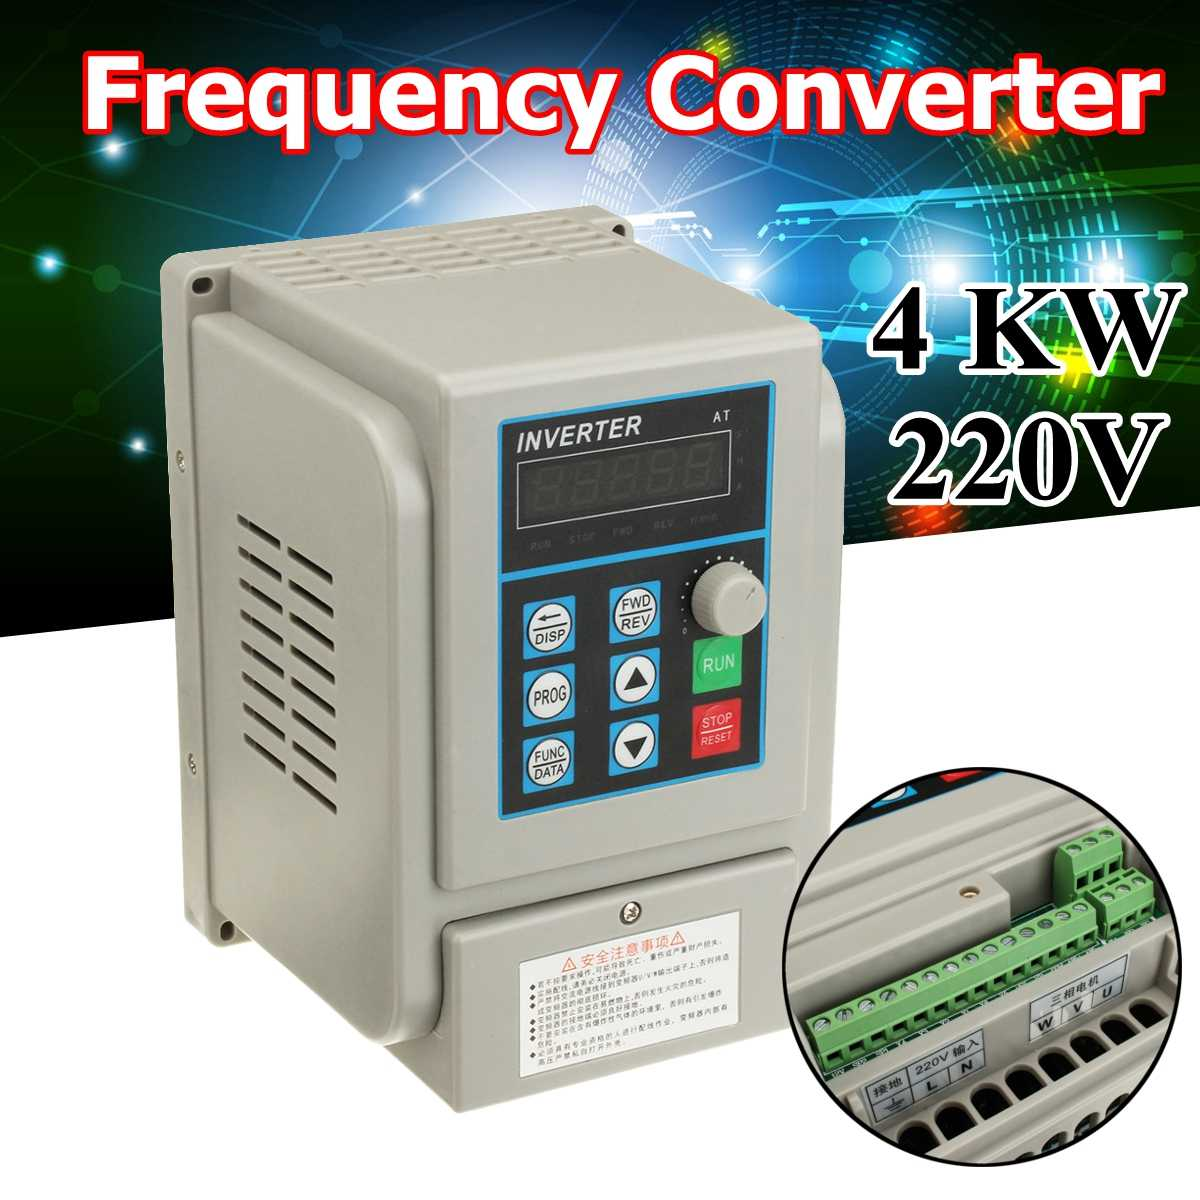 AC 220V Frequency Converter 4KW Variable Frequency Drive Converter VFD Speed Controller Converter CNC Spindle motor speedAC 220V Frequency Converter 4KW Variable Frequency Drive Converter VFD Speed Controller Converter CNC Spindle motor speed